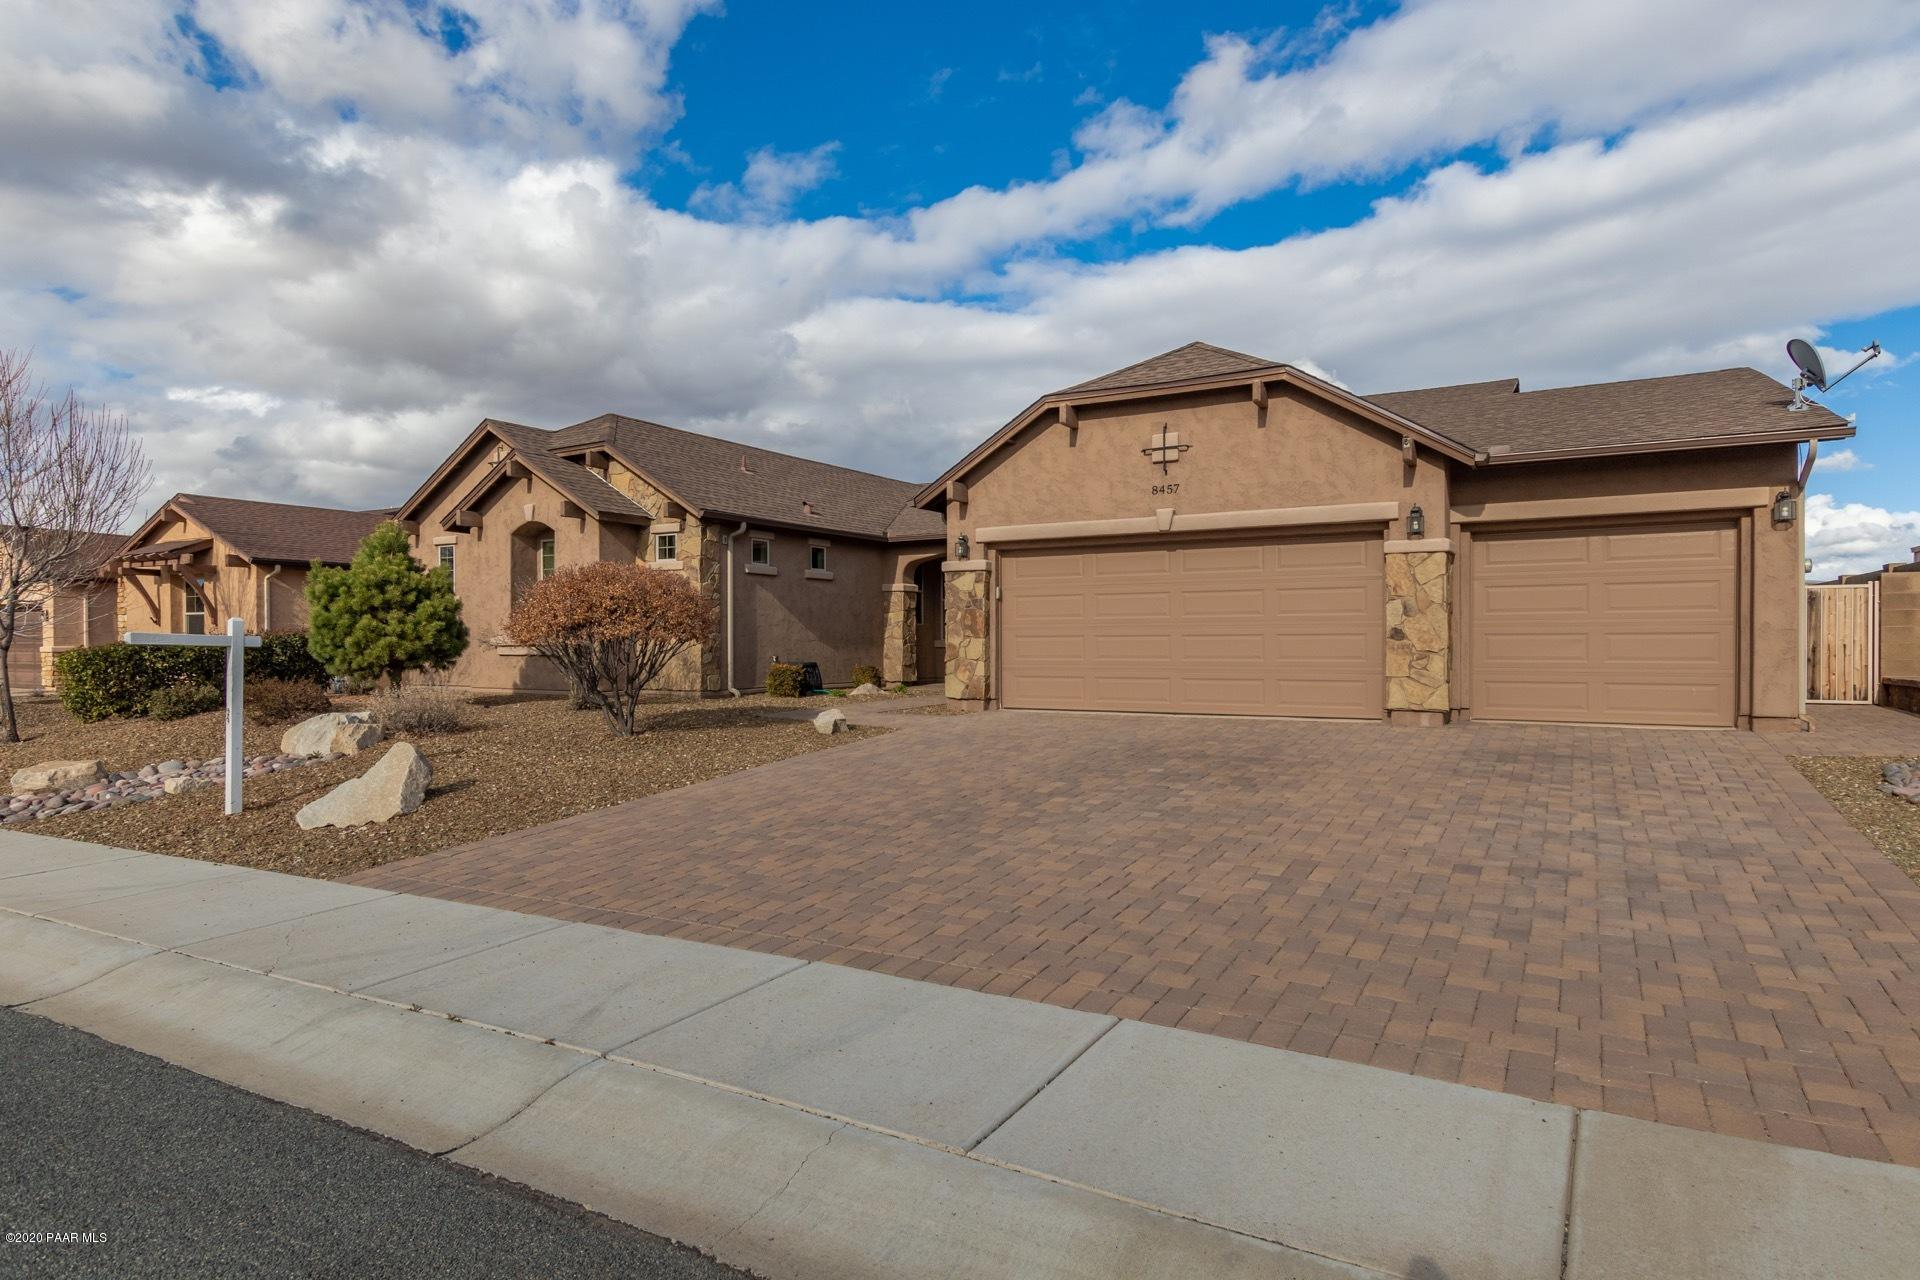 Photo of 8457 Pepperbox, Prescott Valley, AZ 86315